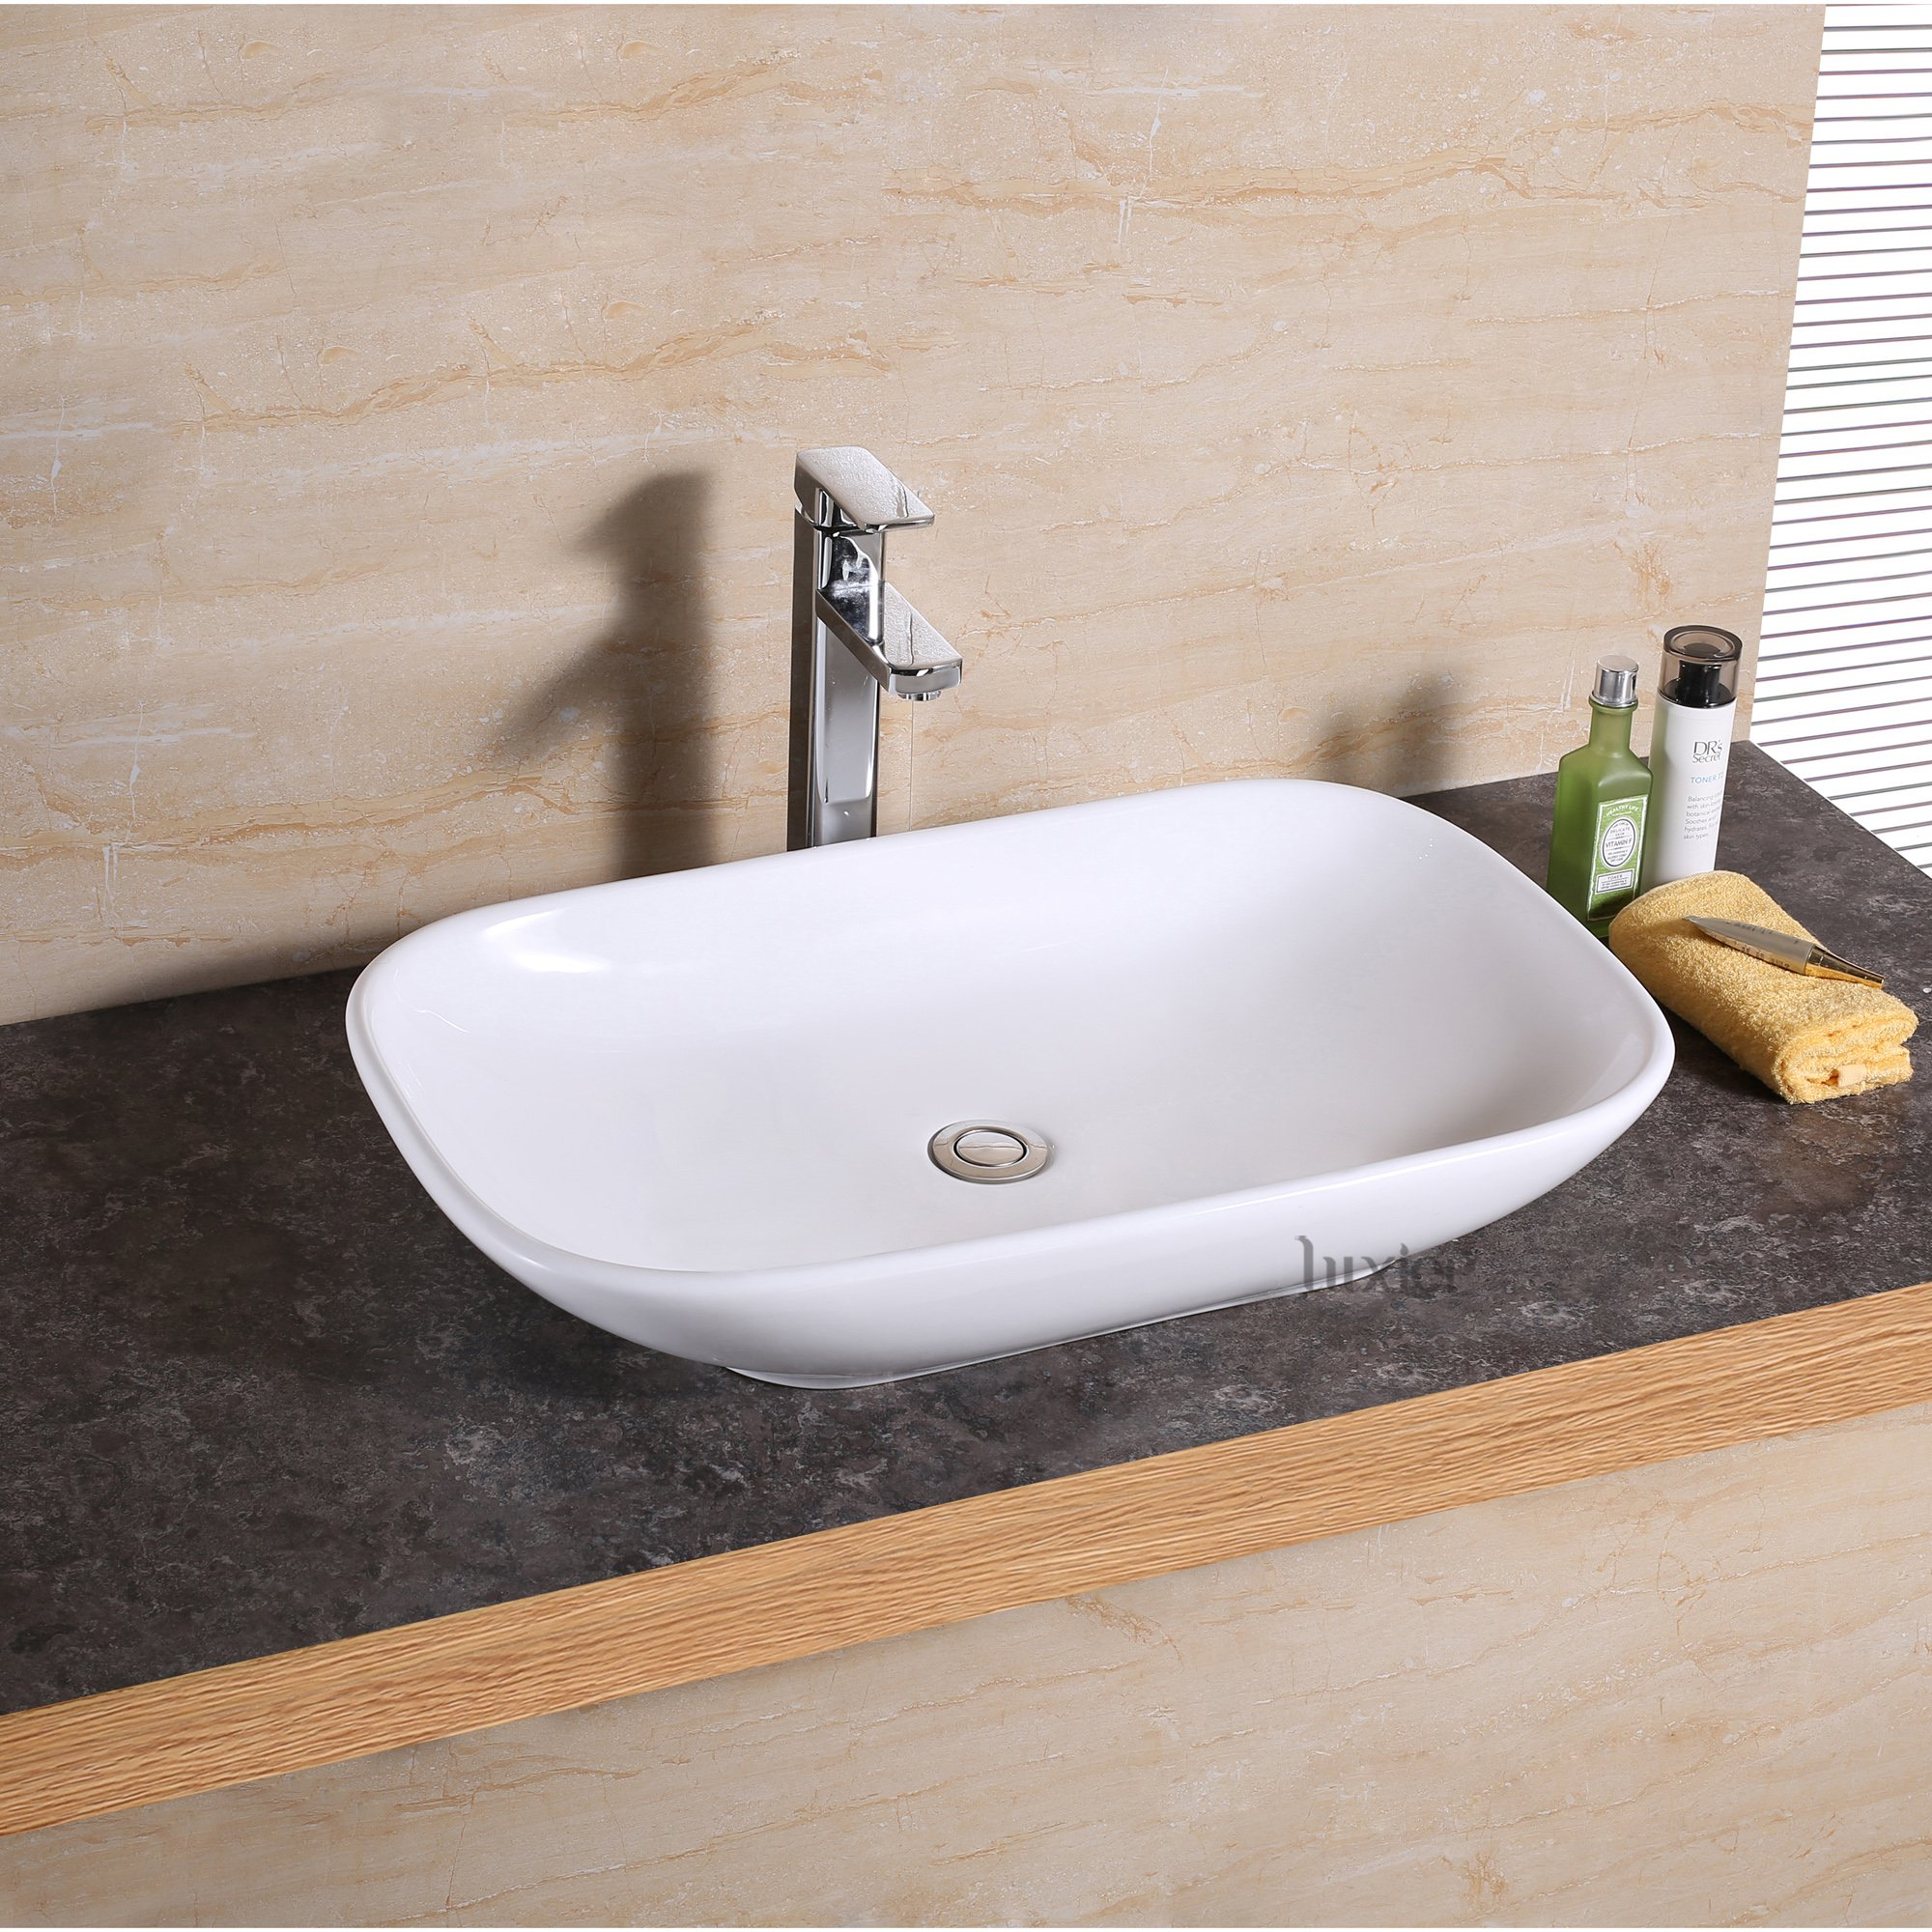 Luxier CS-022 Bathroom Porcelain Ceramic Vessel Vanity Sink Art Basin